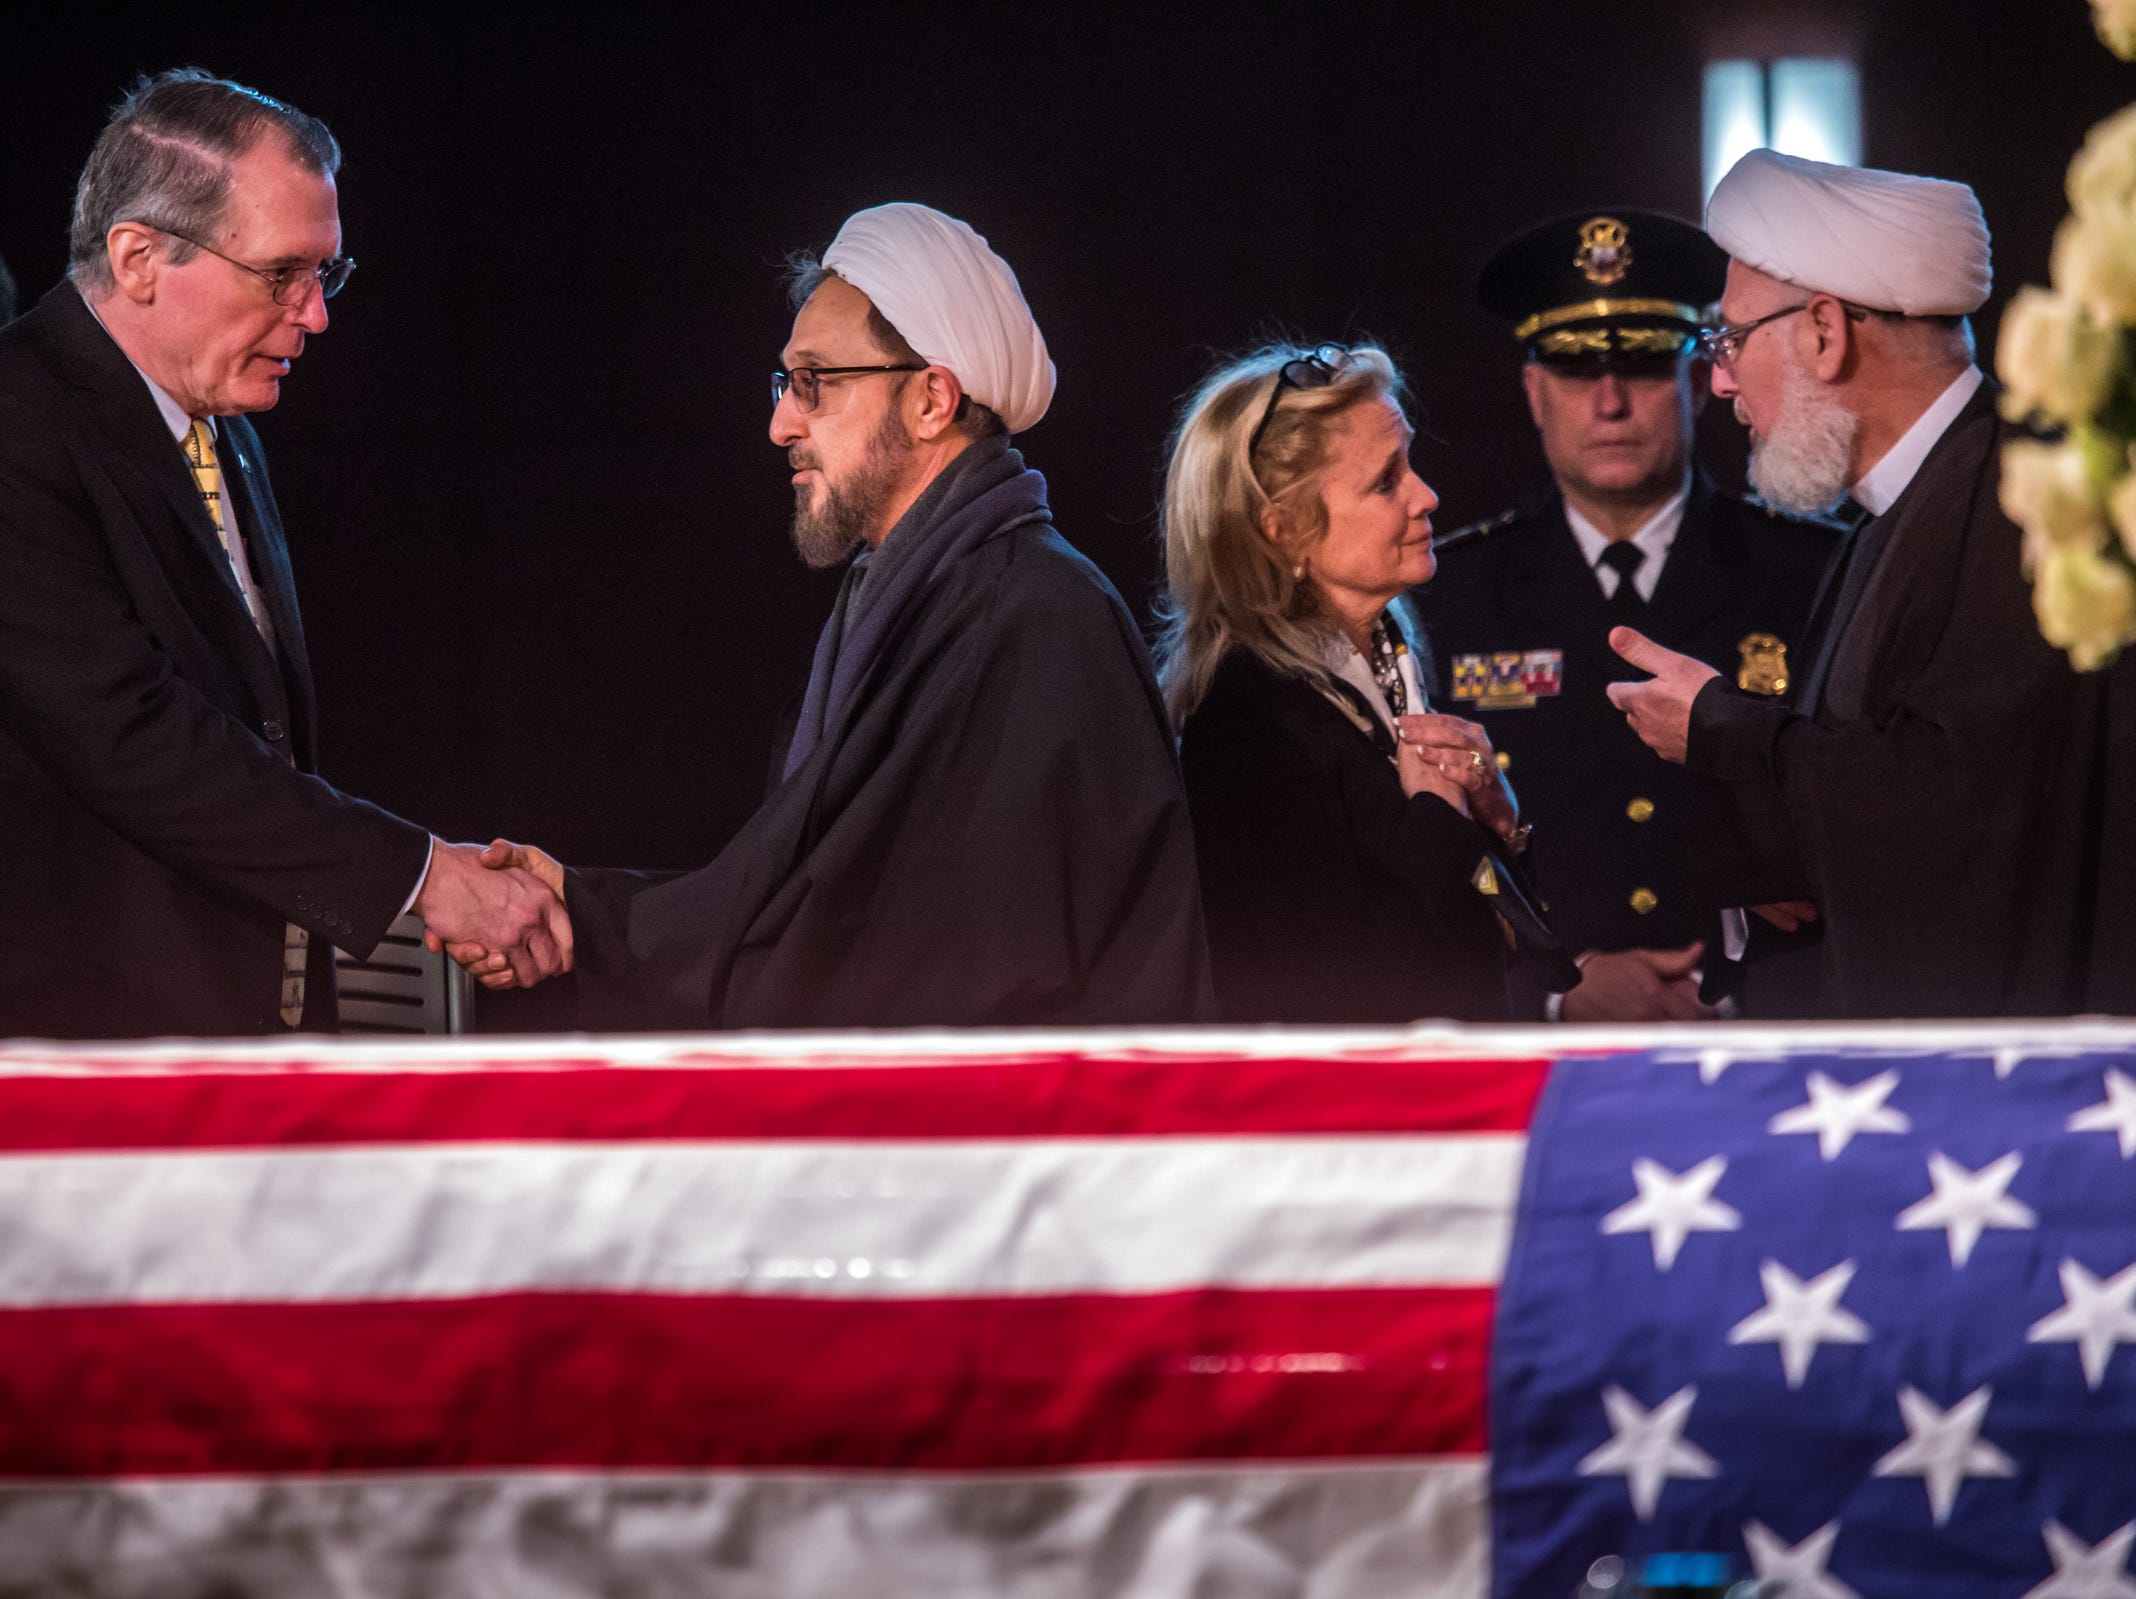 Judge Christopher Dingell, left, shakes hands with Imam Ibrahim Kazerooni of the Islamic Center of America as Rep. Debbie Dingell talks with Imam Ahmad Hammoud of the Islamic Center of America by the casket of her late husband former U.S. Rep. John D. Dingell during his visitation at the Ford Community and Performing Arts Center in Dearborn on Monday, February 11, 2019.